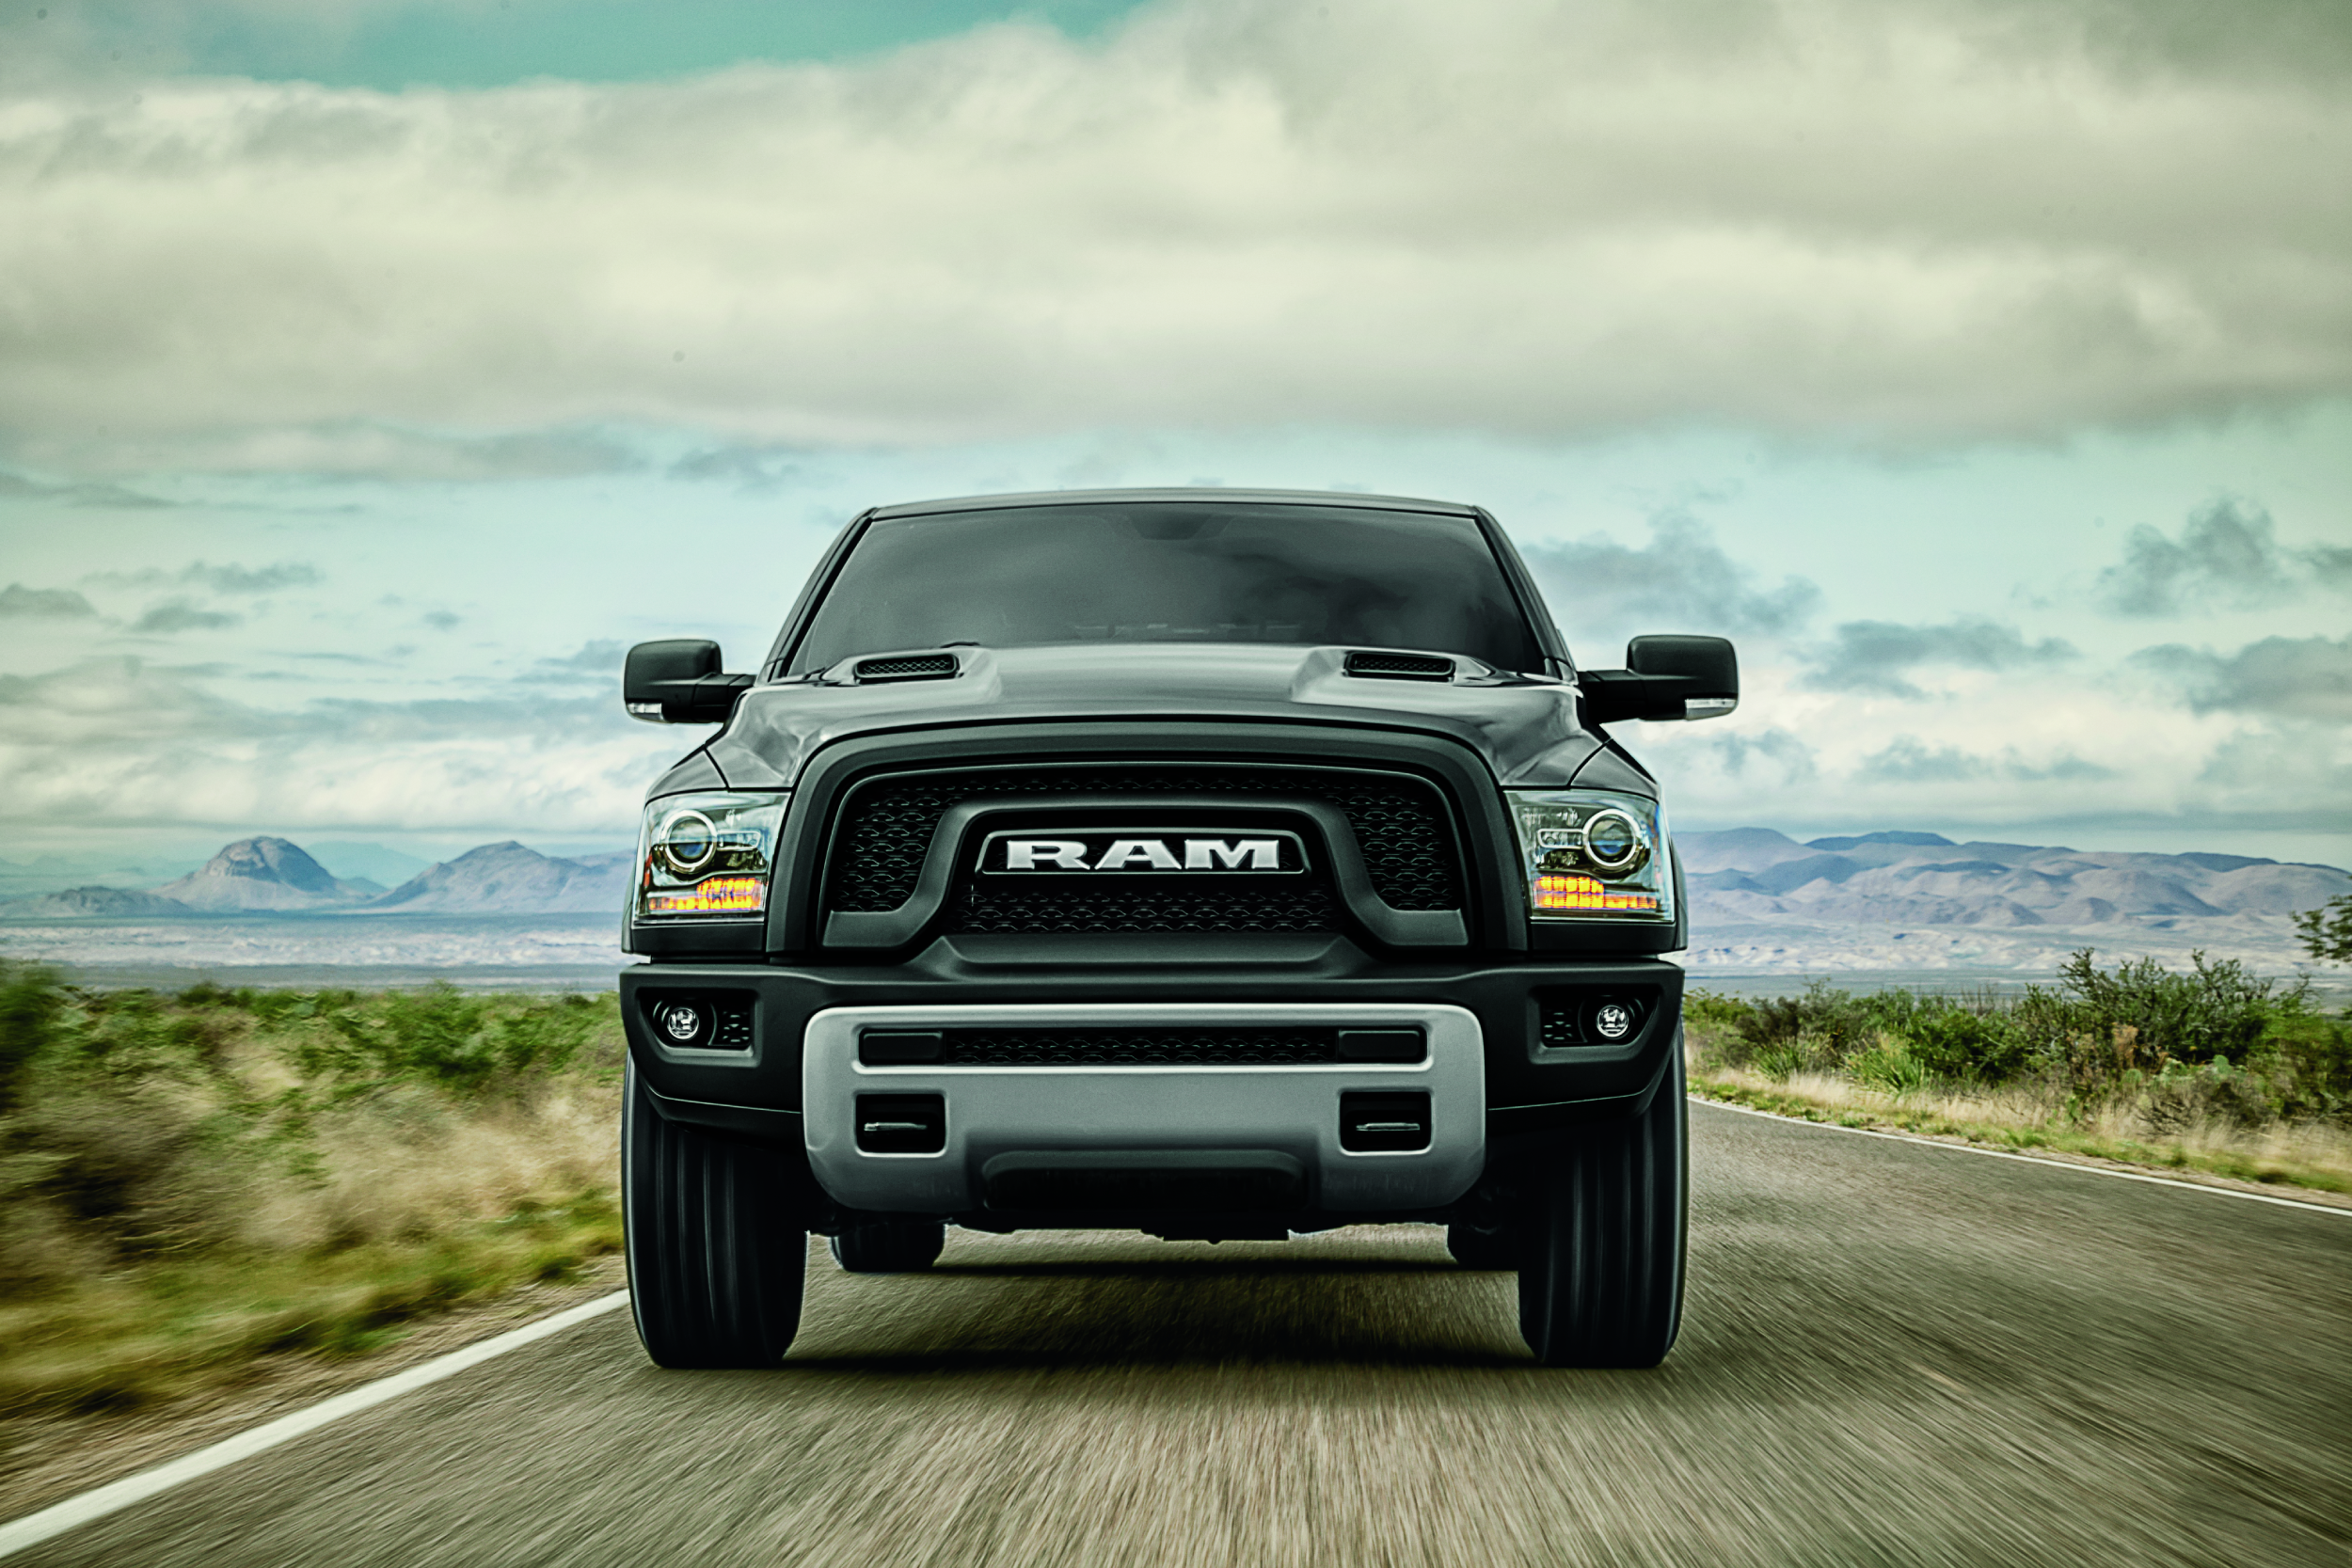 Ram Truck available in Rio Grande City, TX at Payne Rio Chrysler Dodge Jeep Ram